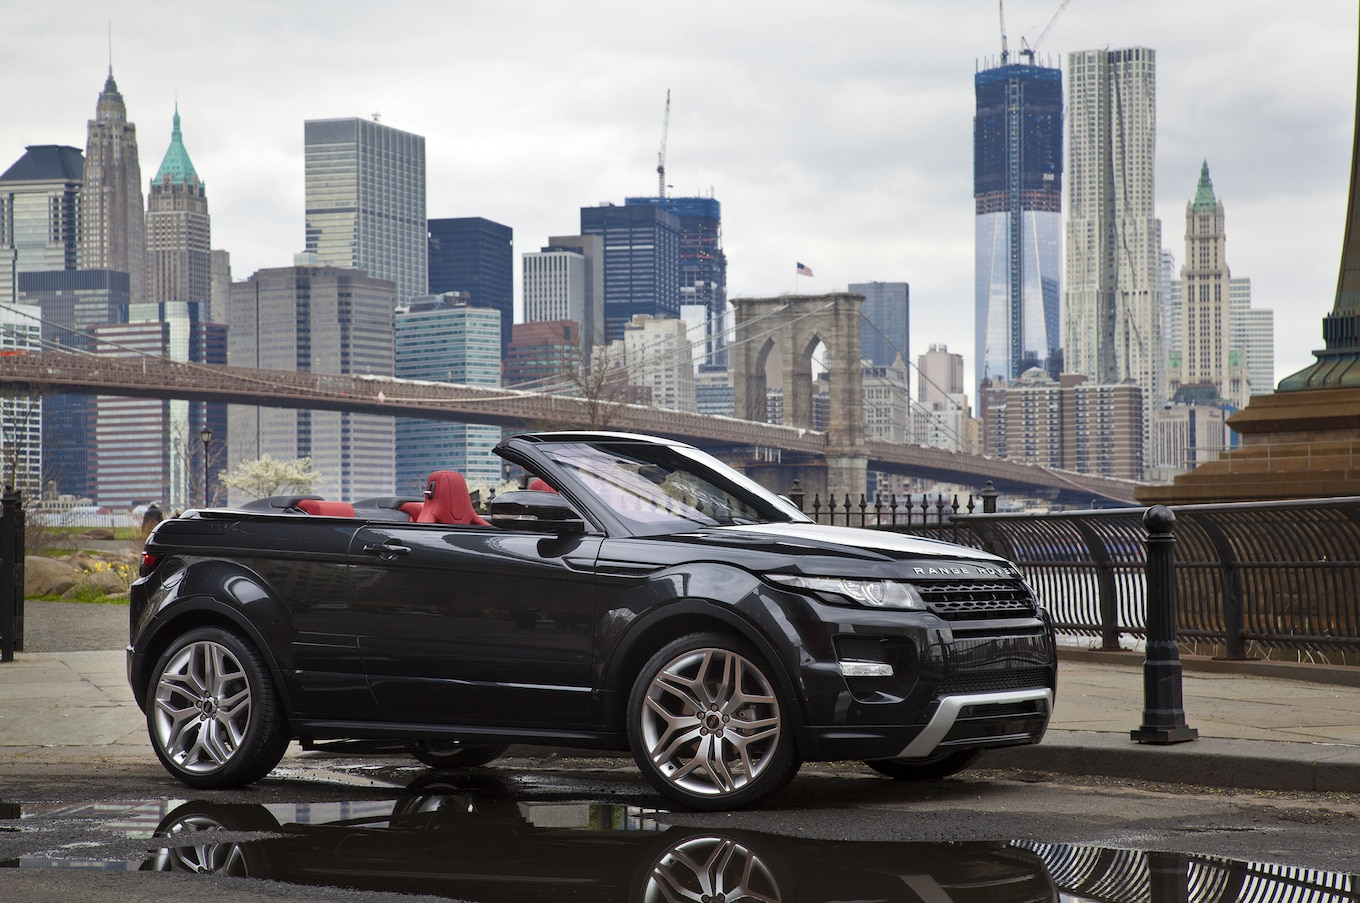 We Hear Production Range Rover Evoque Convertible Still on Table